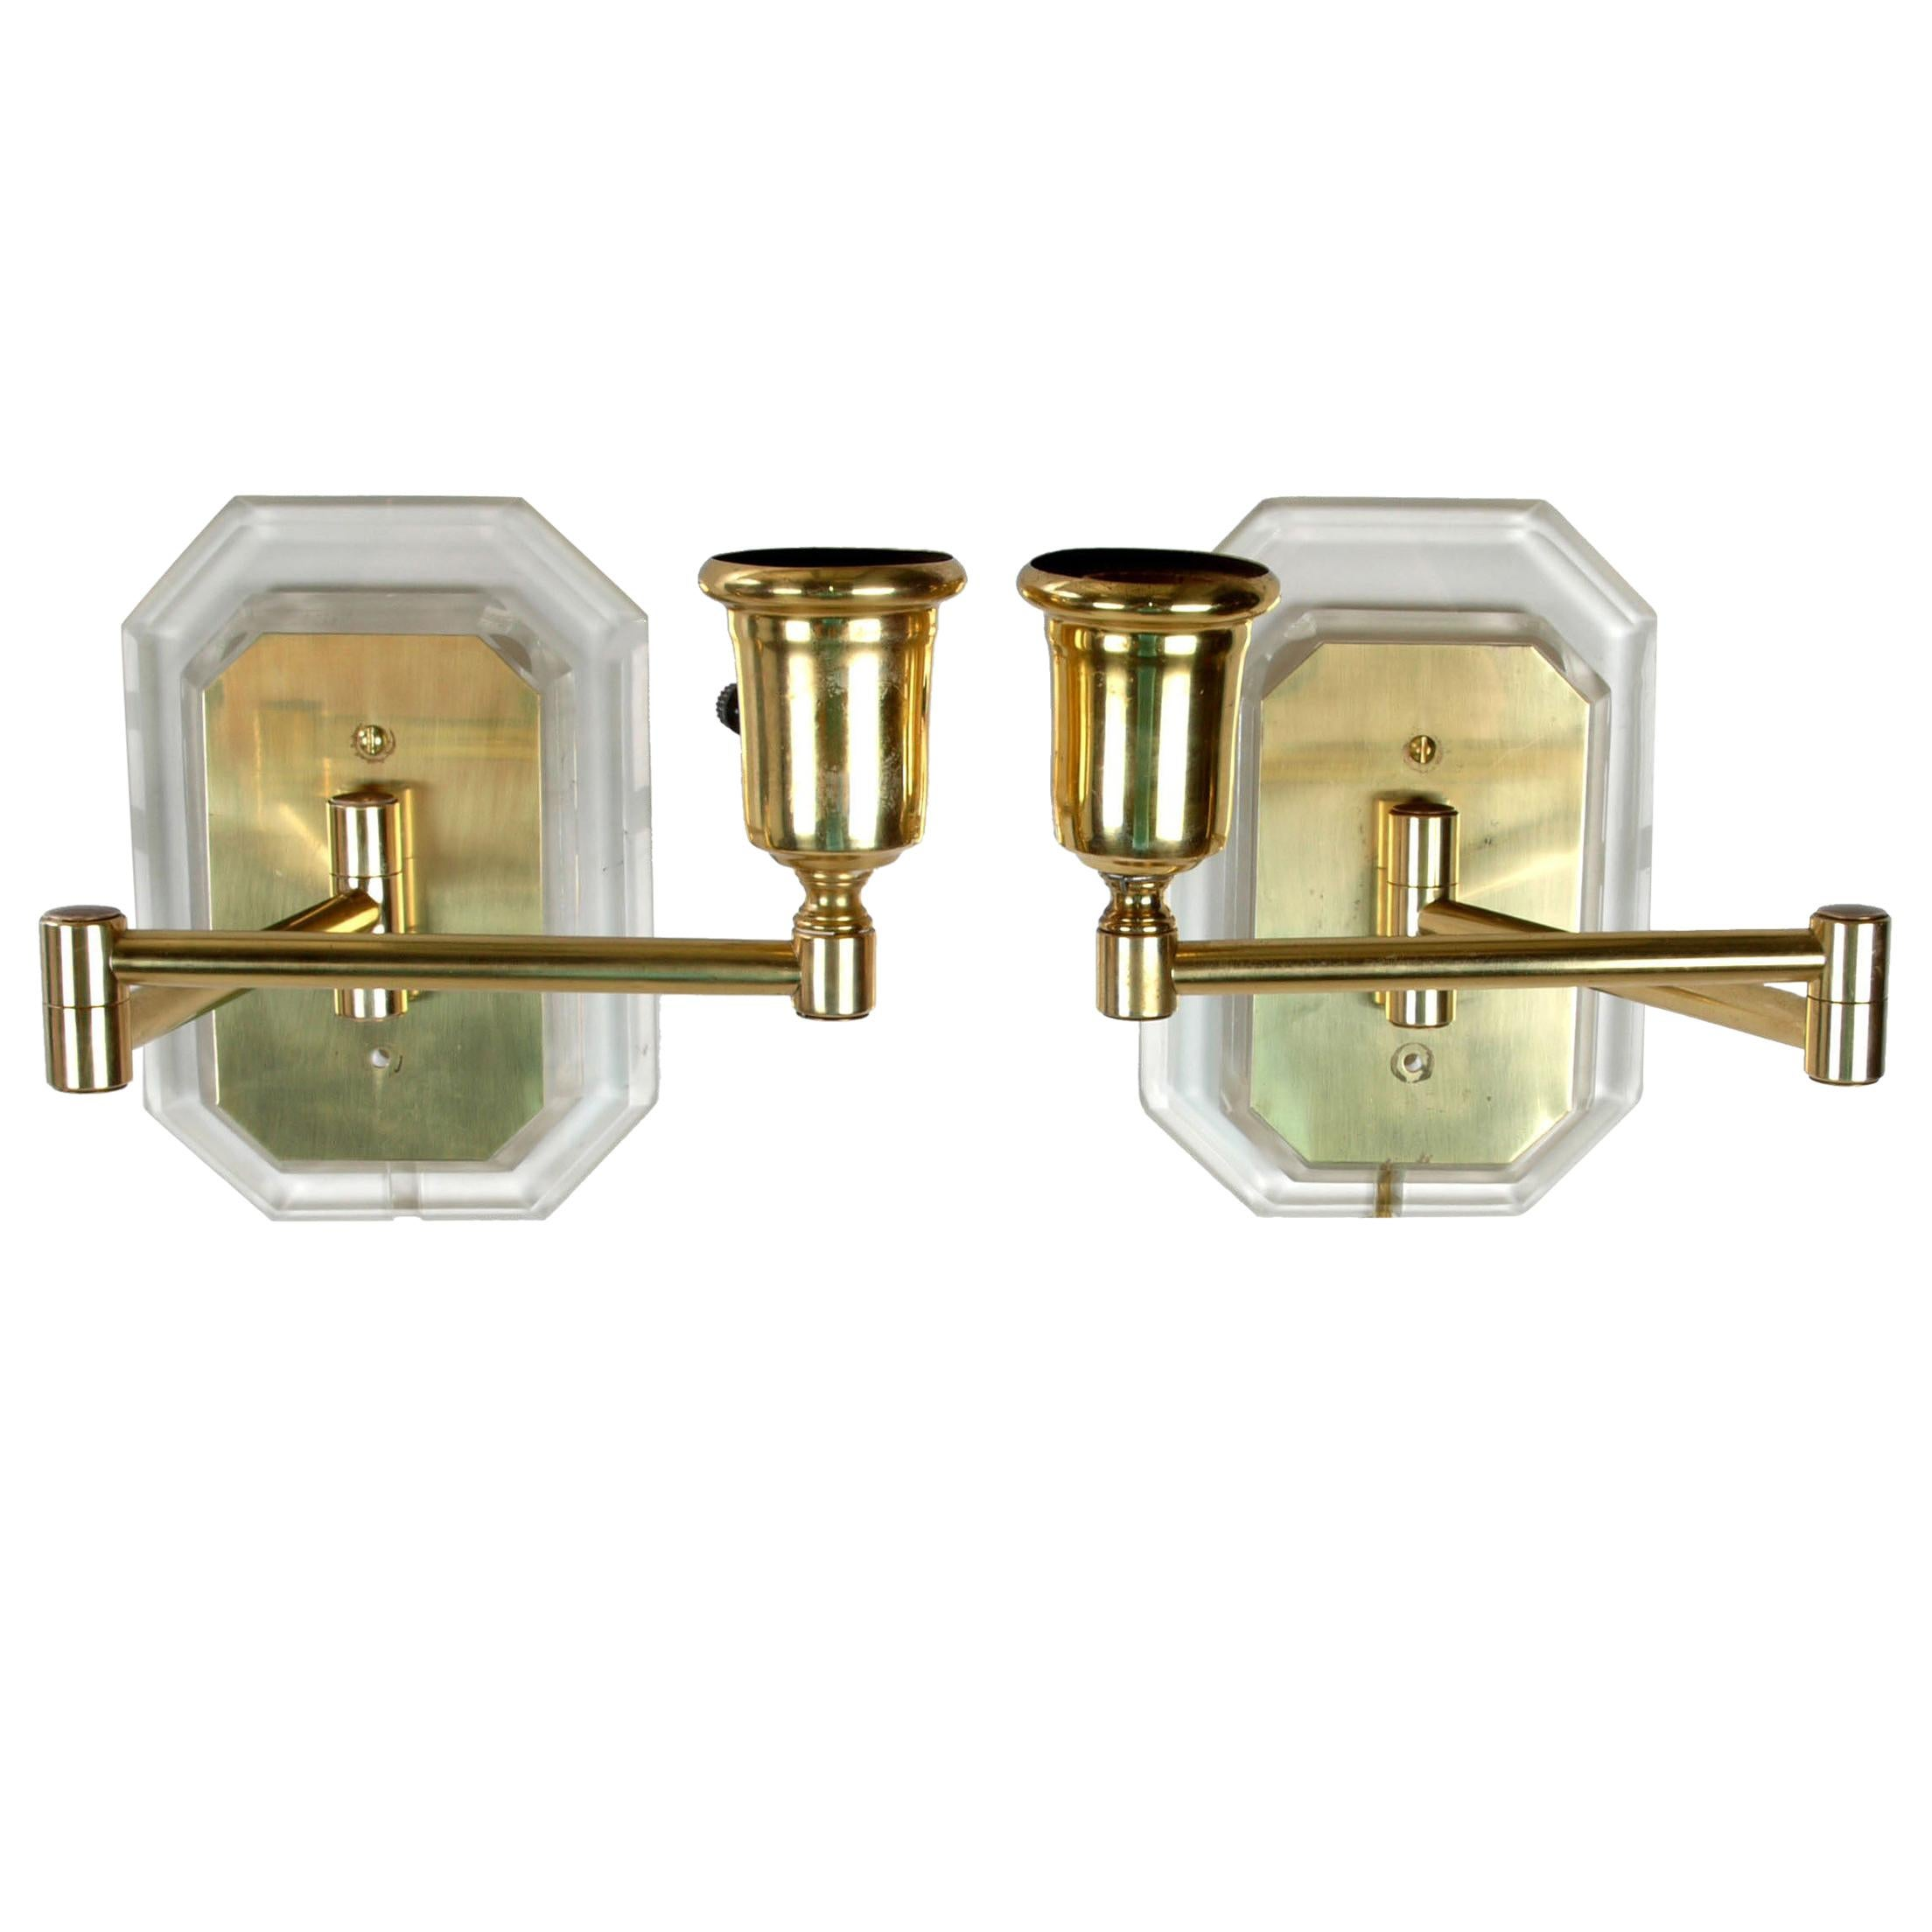 Karl Springer Style Acrylic and Brass Swing Wall Sconces, a Pair